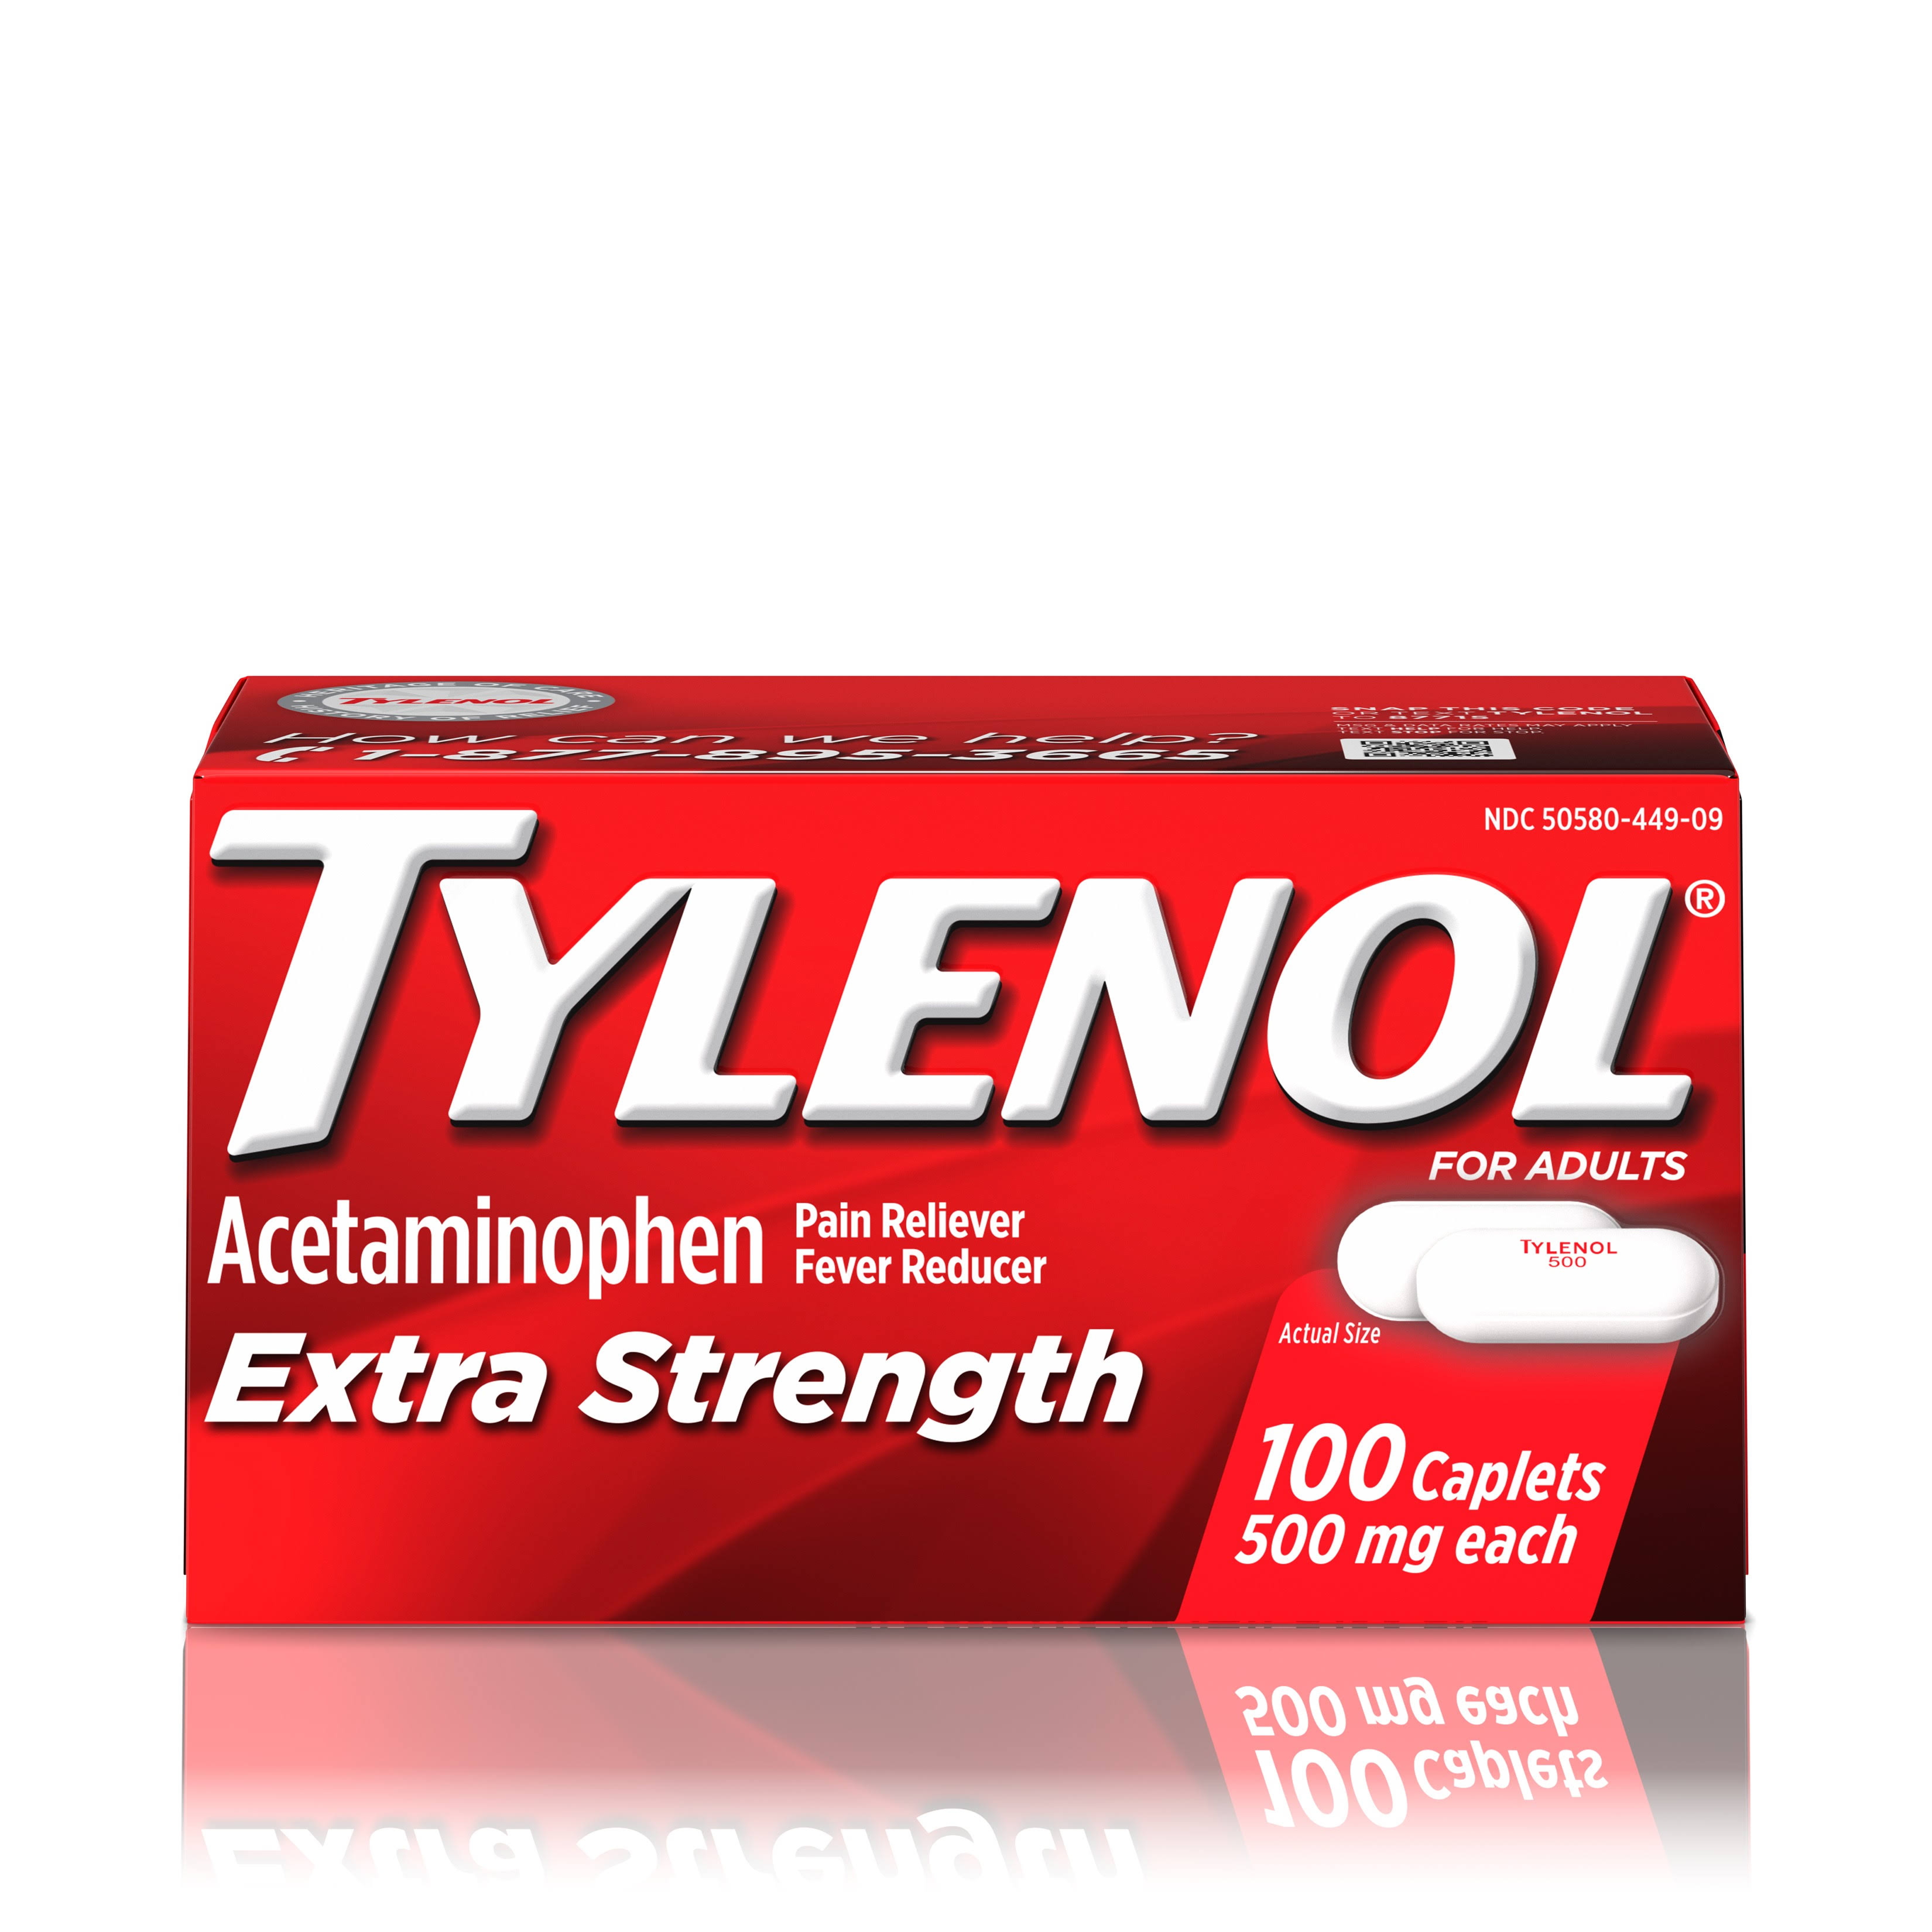 Tylenol Extra Strength Acetaminophen Pain Reliever - 100 Caplets